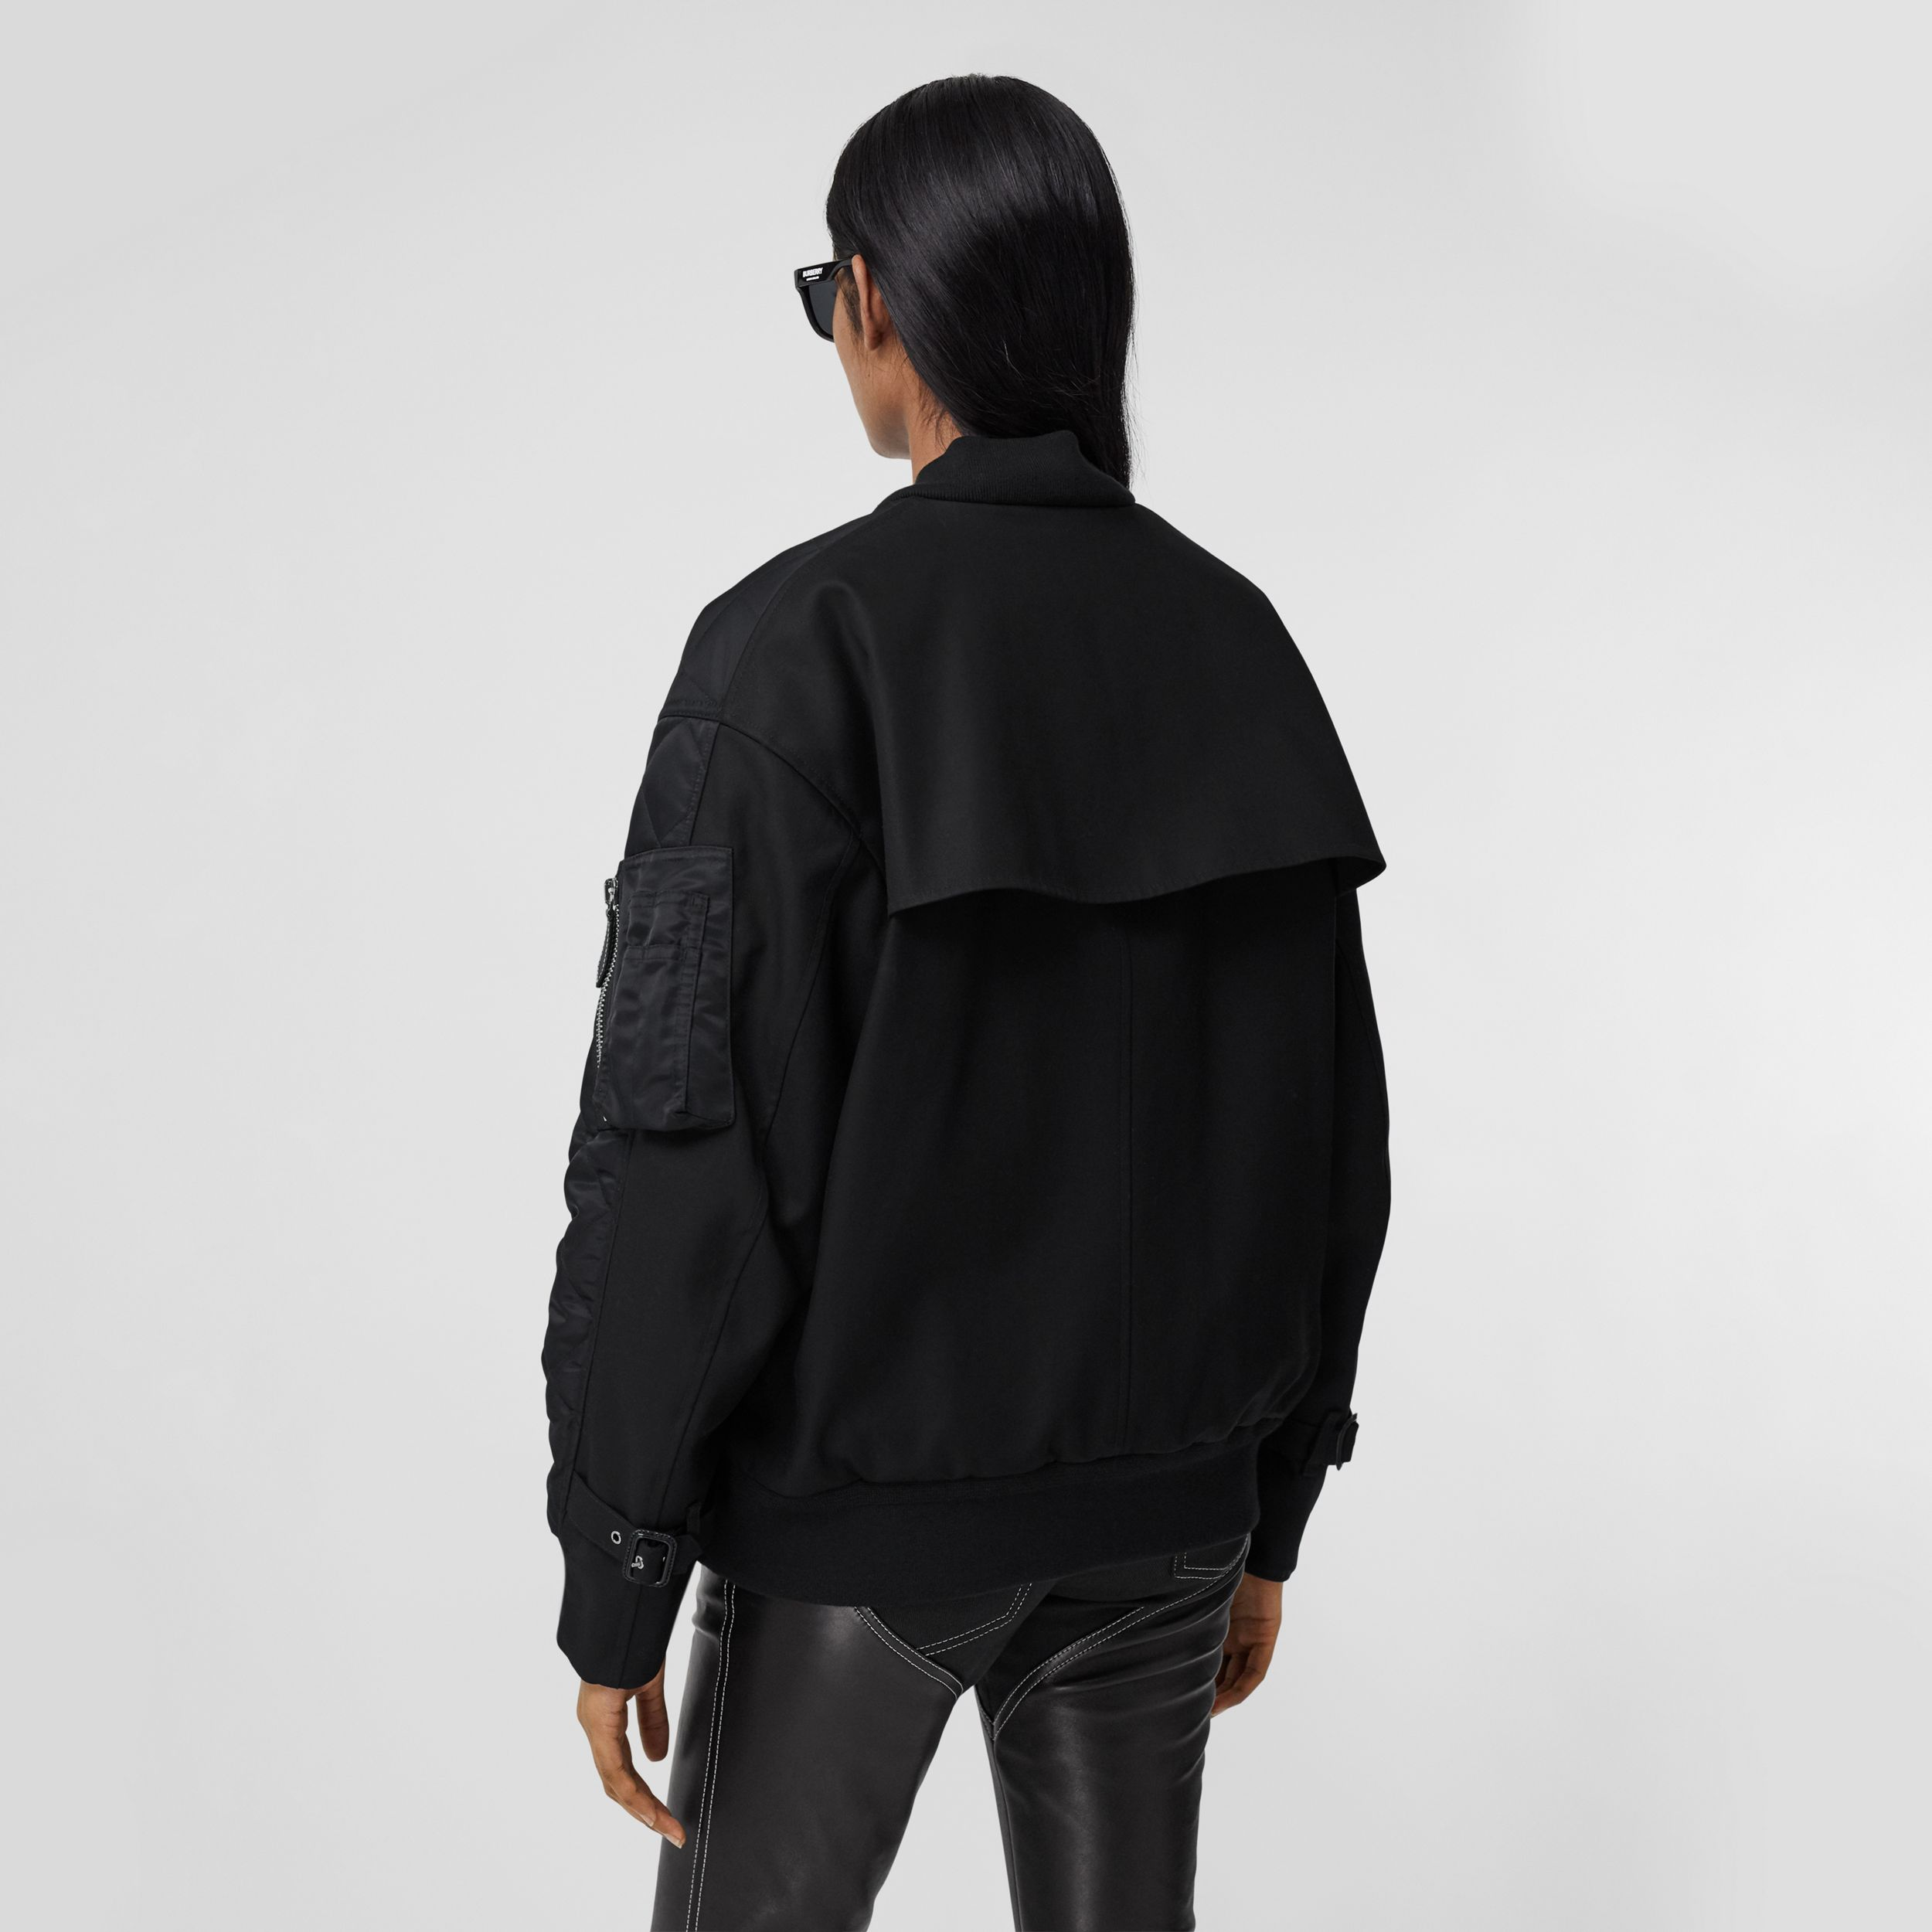 Diamond Quilted Nylon and Cotton Bomber Jacket in Black/black - Women | Burberry Singapore - 3